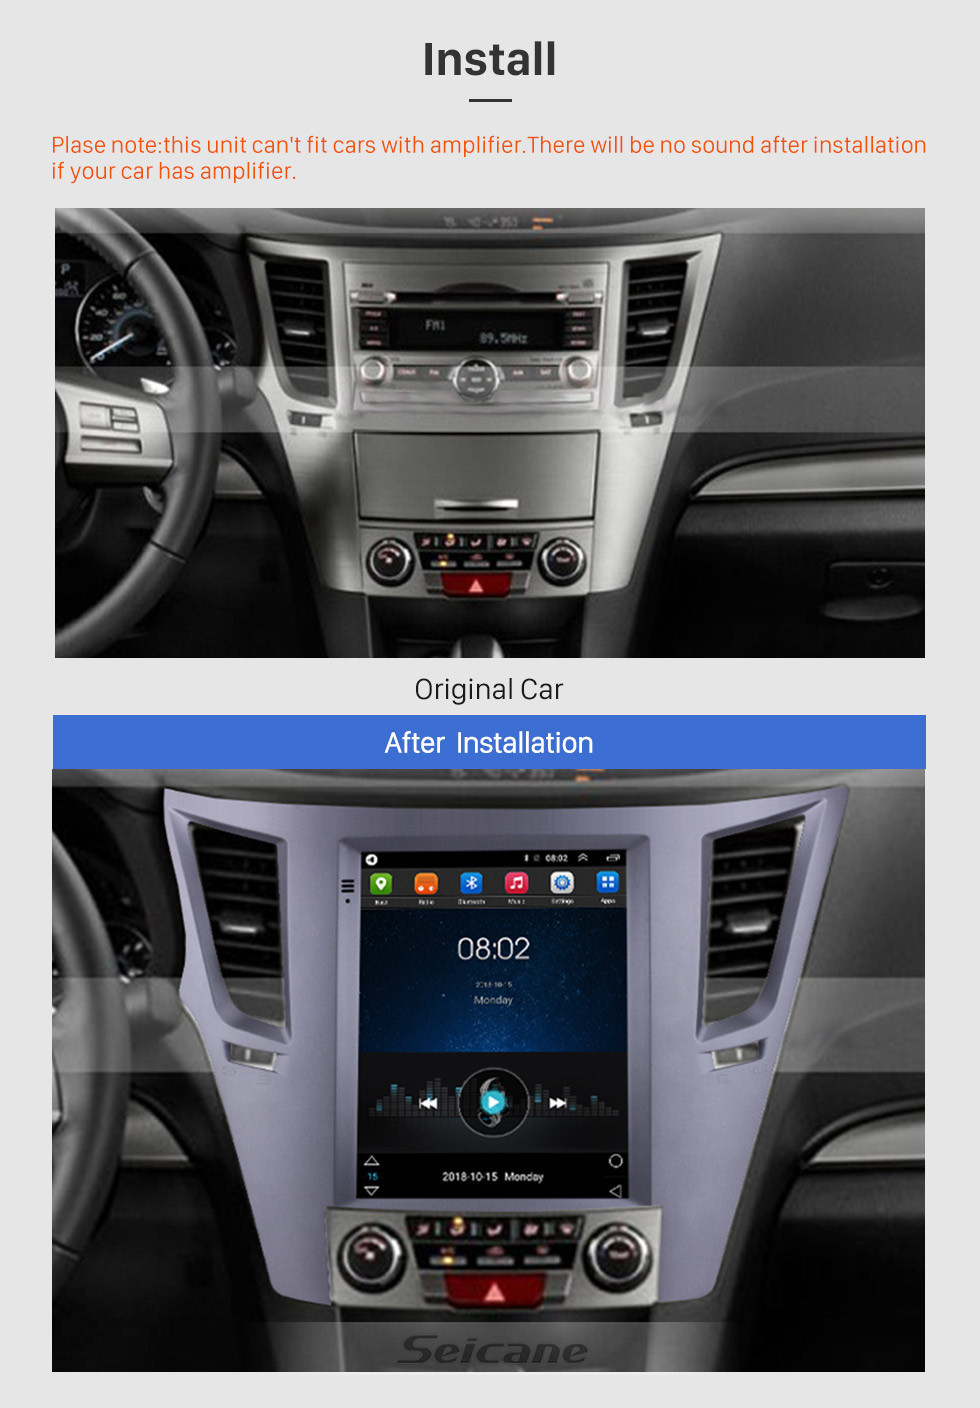 Seicane Aftermarket 9.7 inch Android 9.1 Radio for 2010-2014 Subaru Outback GPS Navigation HD Touchscreen Stereo Bluetooth USB MP4 music Mirror Link SWC 4G WIFI